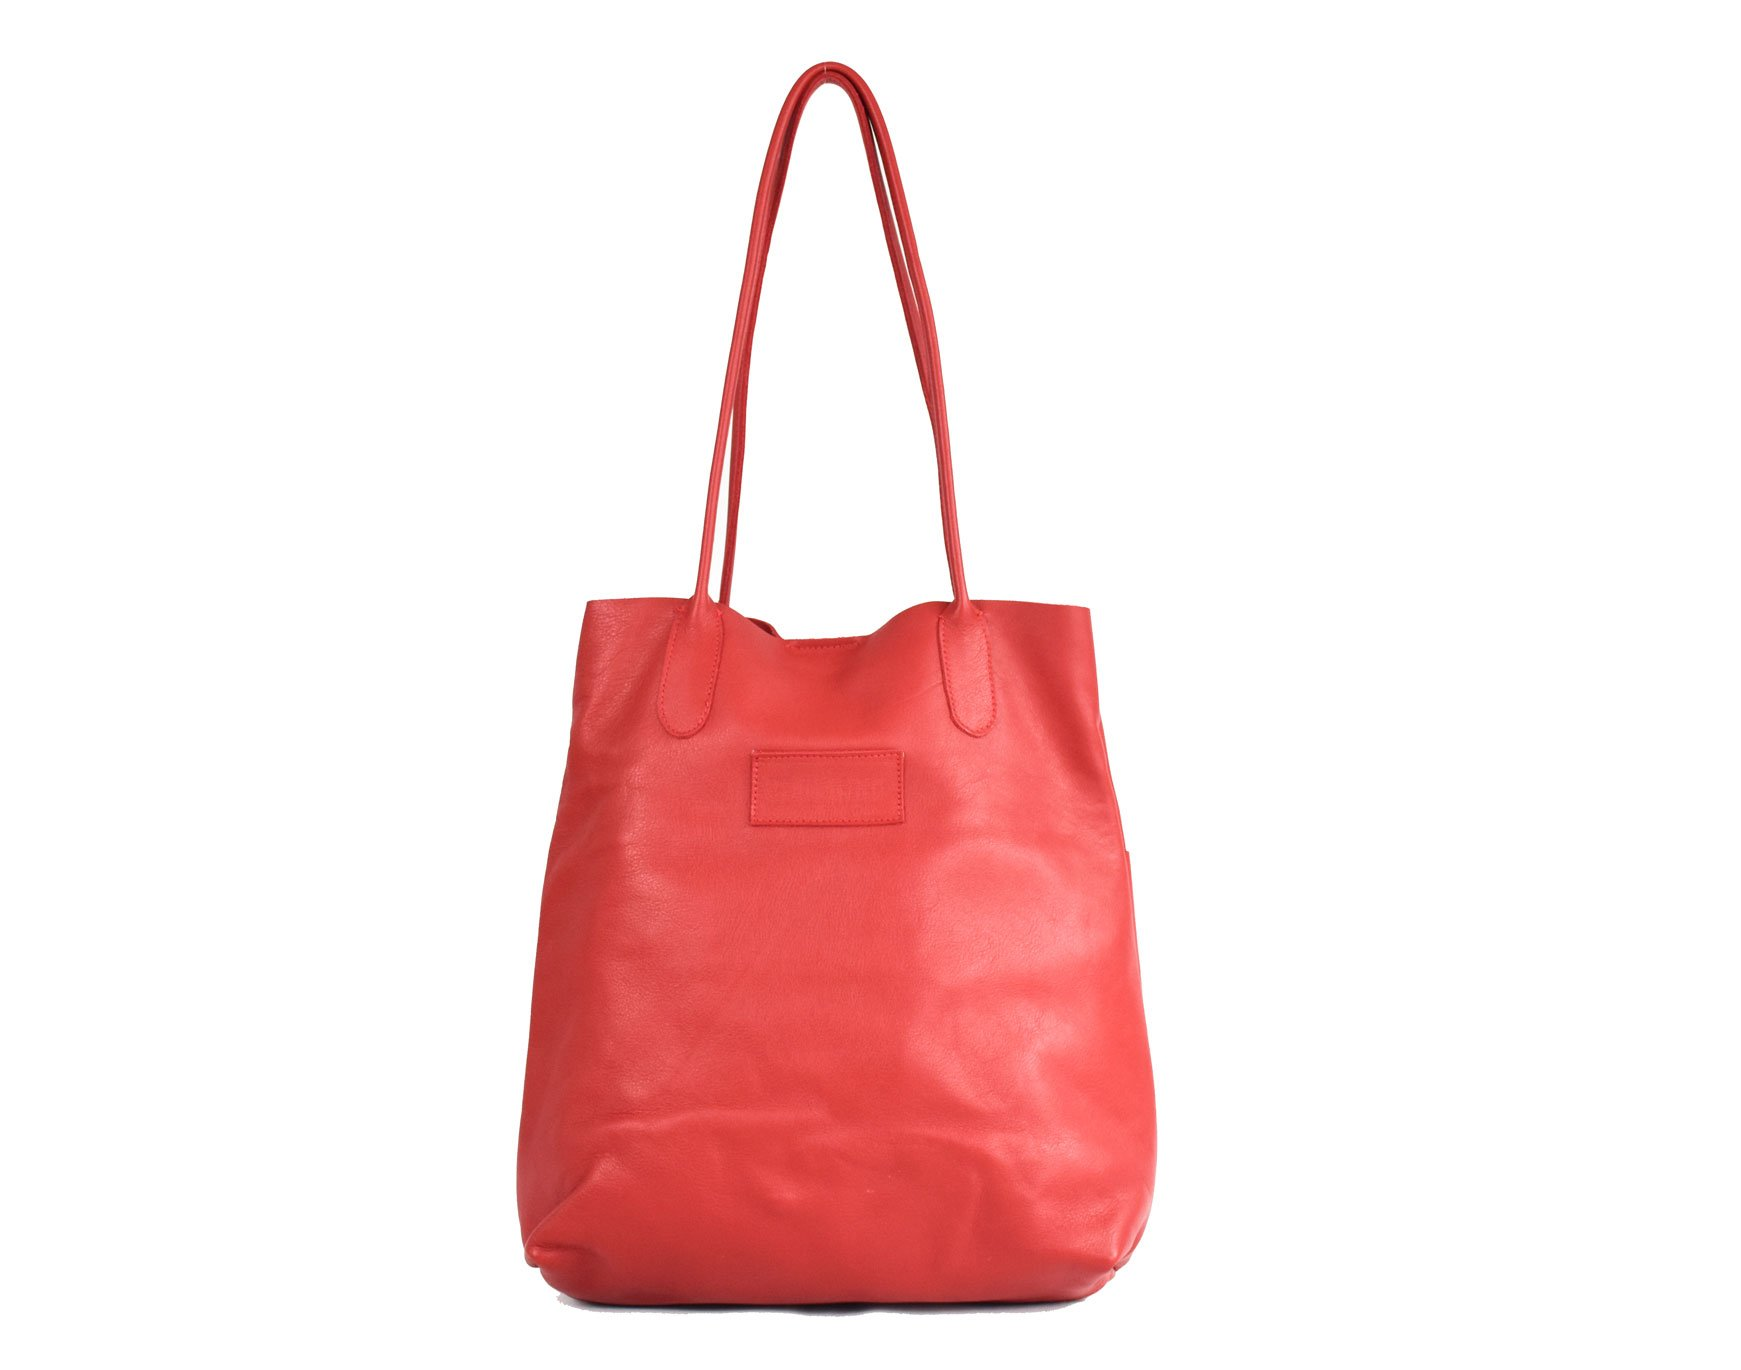 chaco rojo tottebag ligero handmade barcelona leather piel real